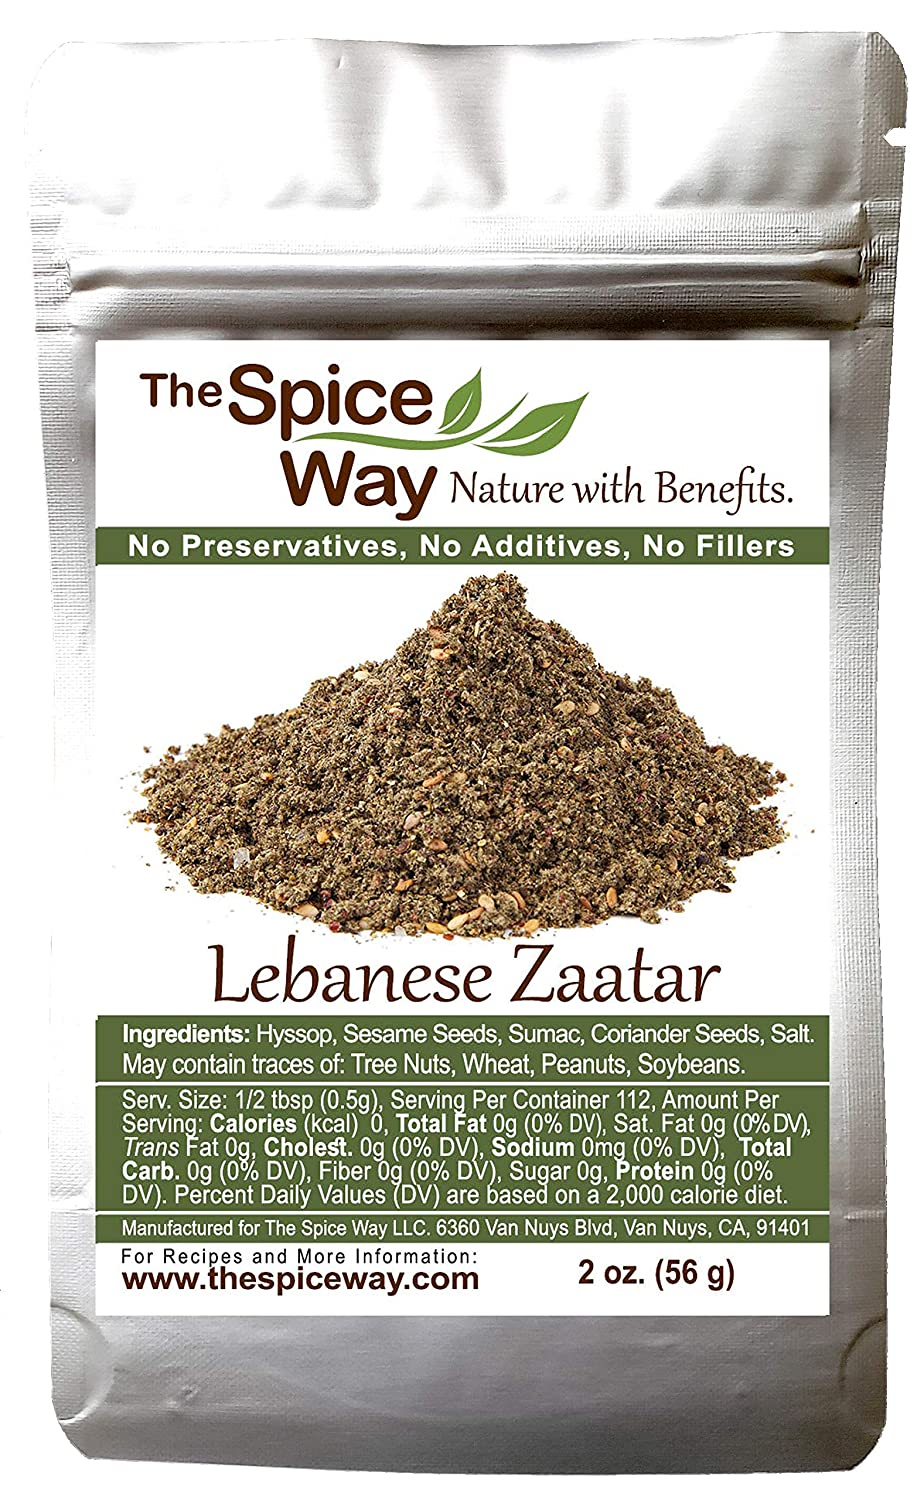 The Spice Way - Traditional Lebanese Zaatar with Hyssop | 2 oz | (No Thyme that is used as an hyssop substitute) Freshly Grown Seasoning. No Additives, No Perservatives (Za'atar/zatar/zahtar/zahatar)